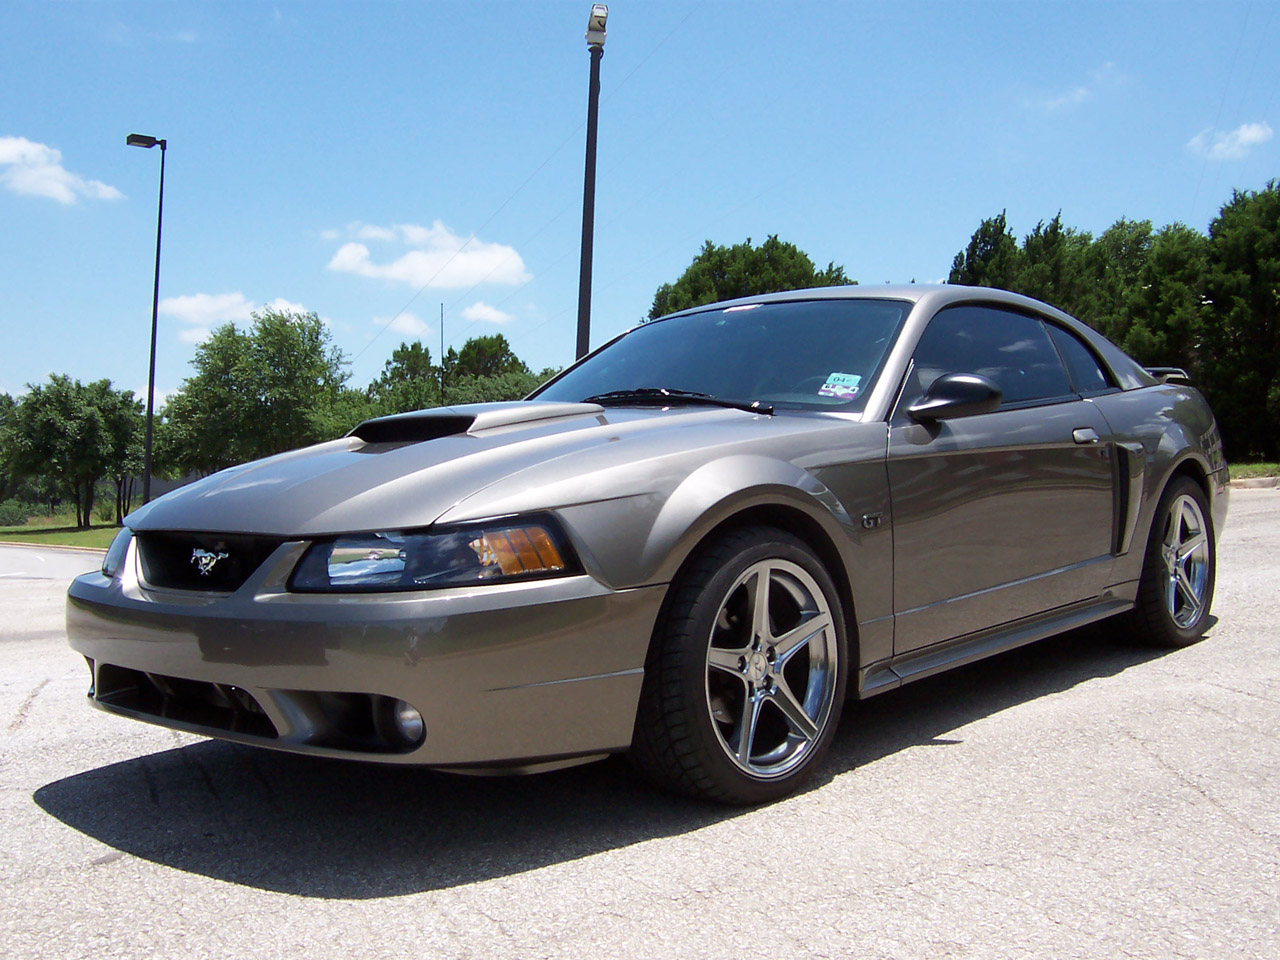 2002 Ford Mustang Photos, Informations, Articles ...